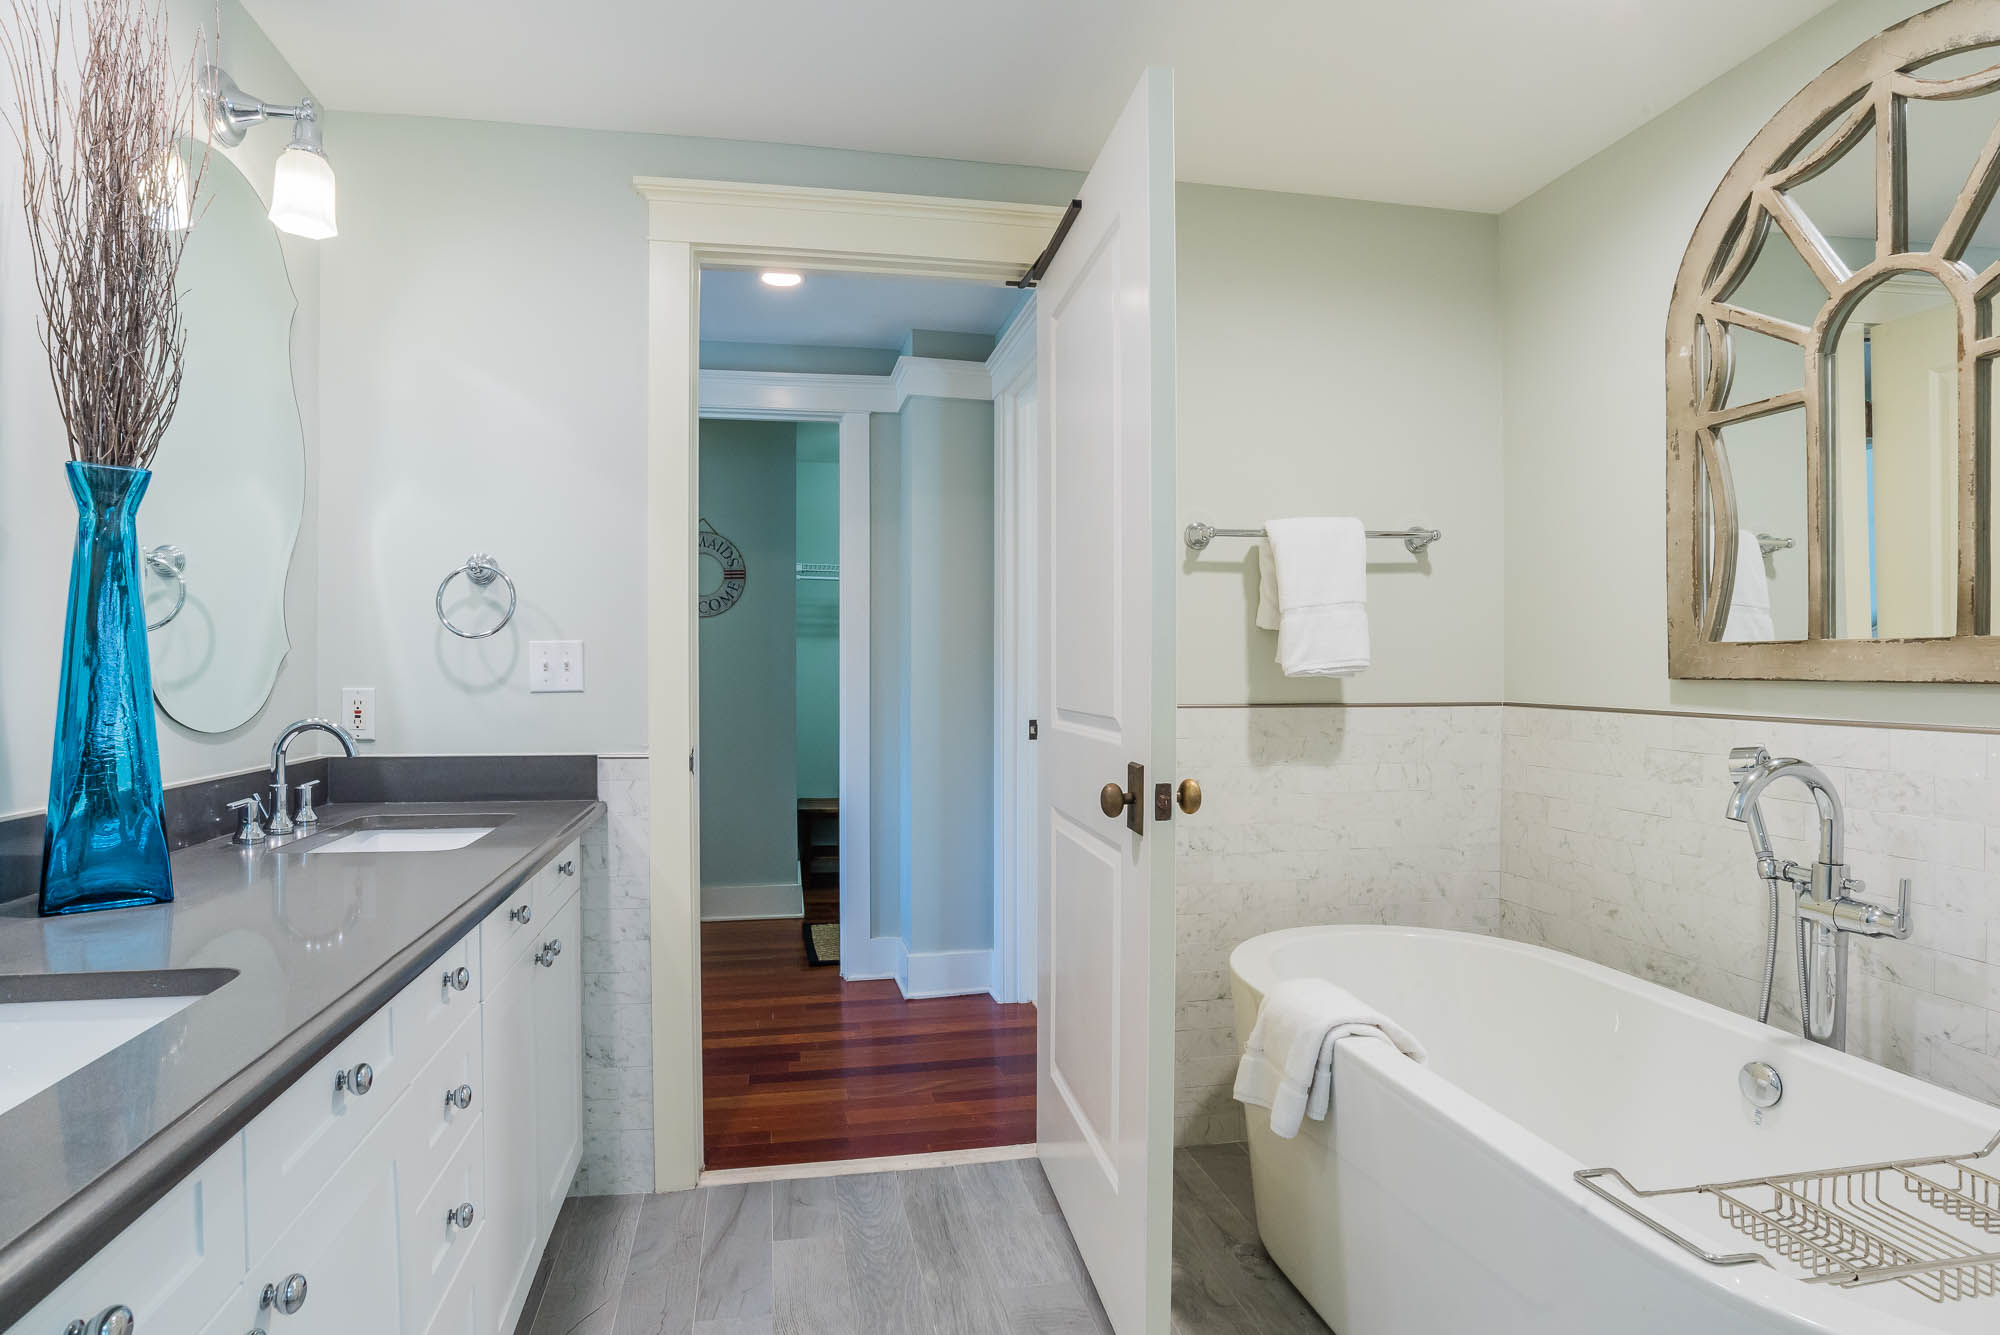 The master bath has a large, double vanity and a soaking tub